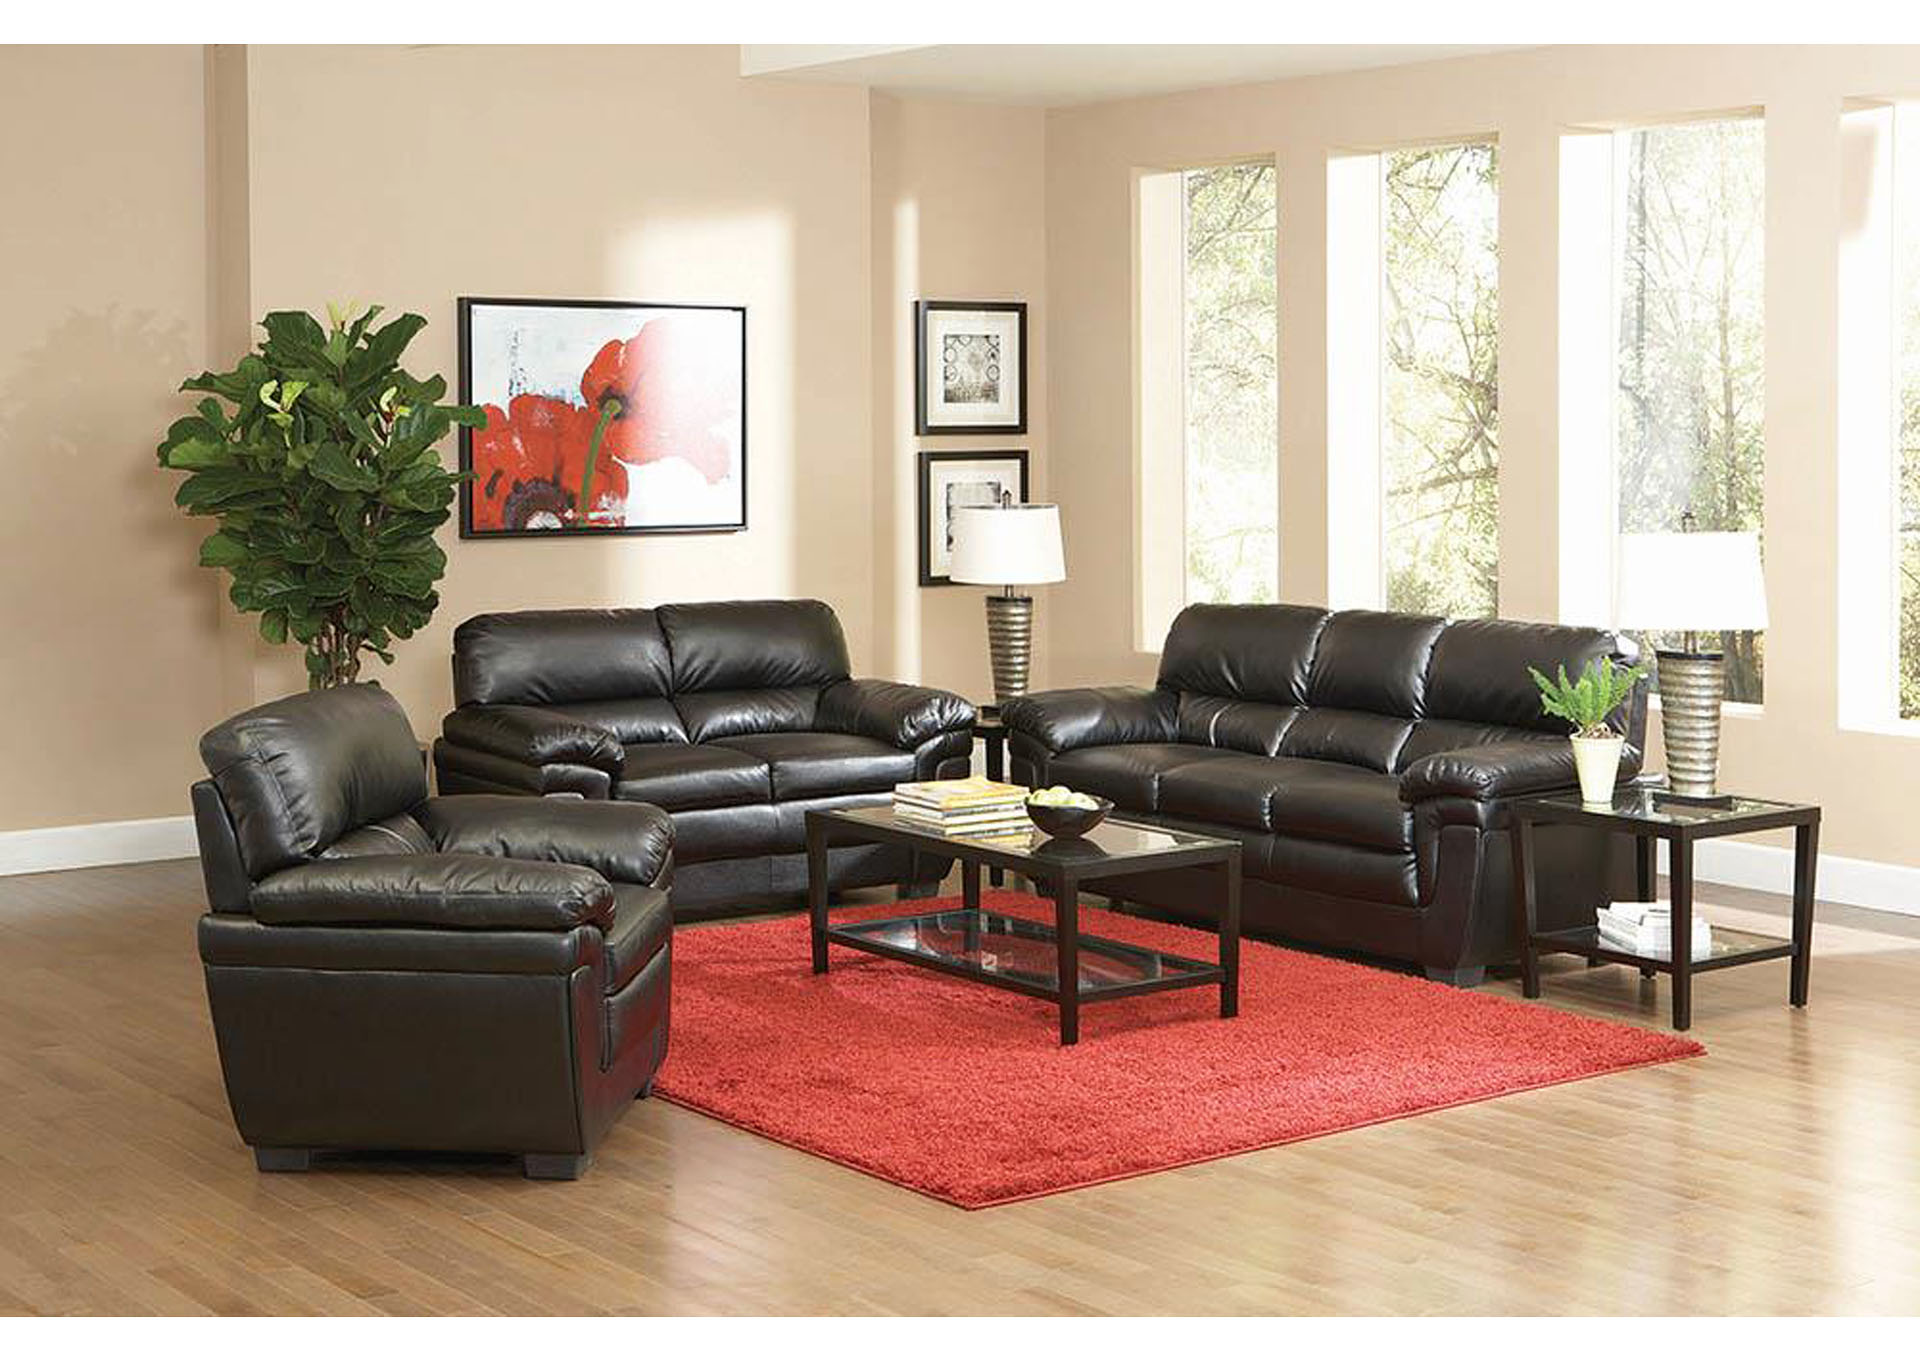 Furniture stores in miami 1 discount ashley home furniture fenmore black love seat - Ways of accessorizing love seats ...